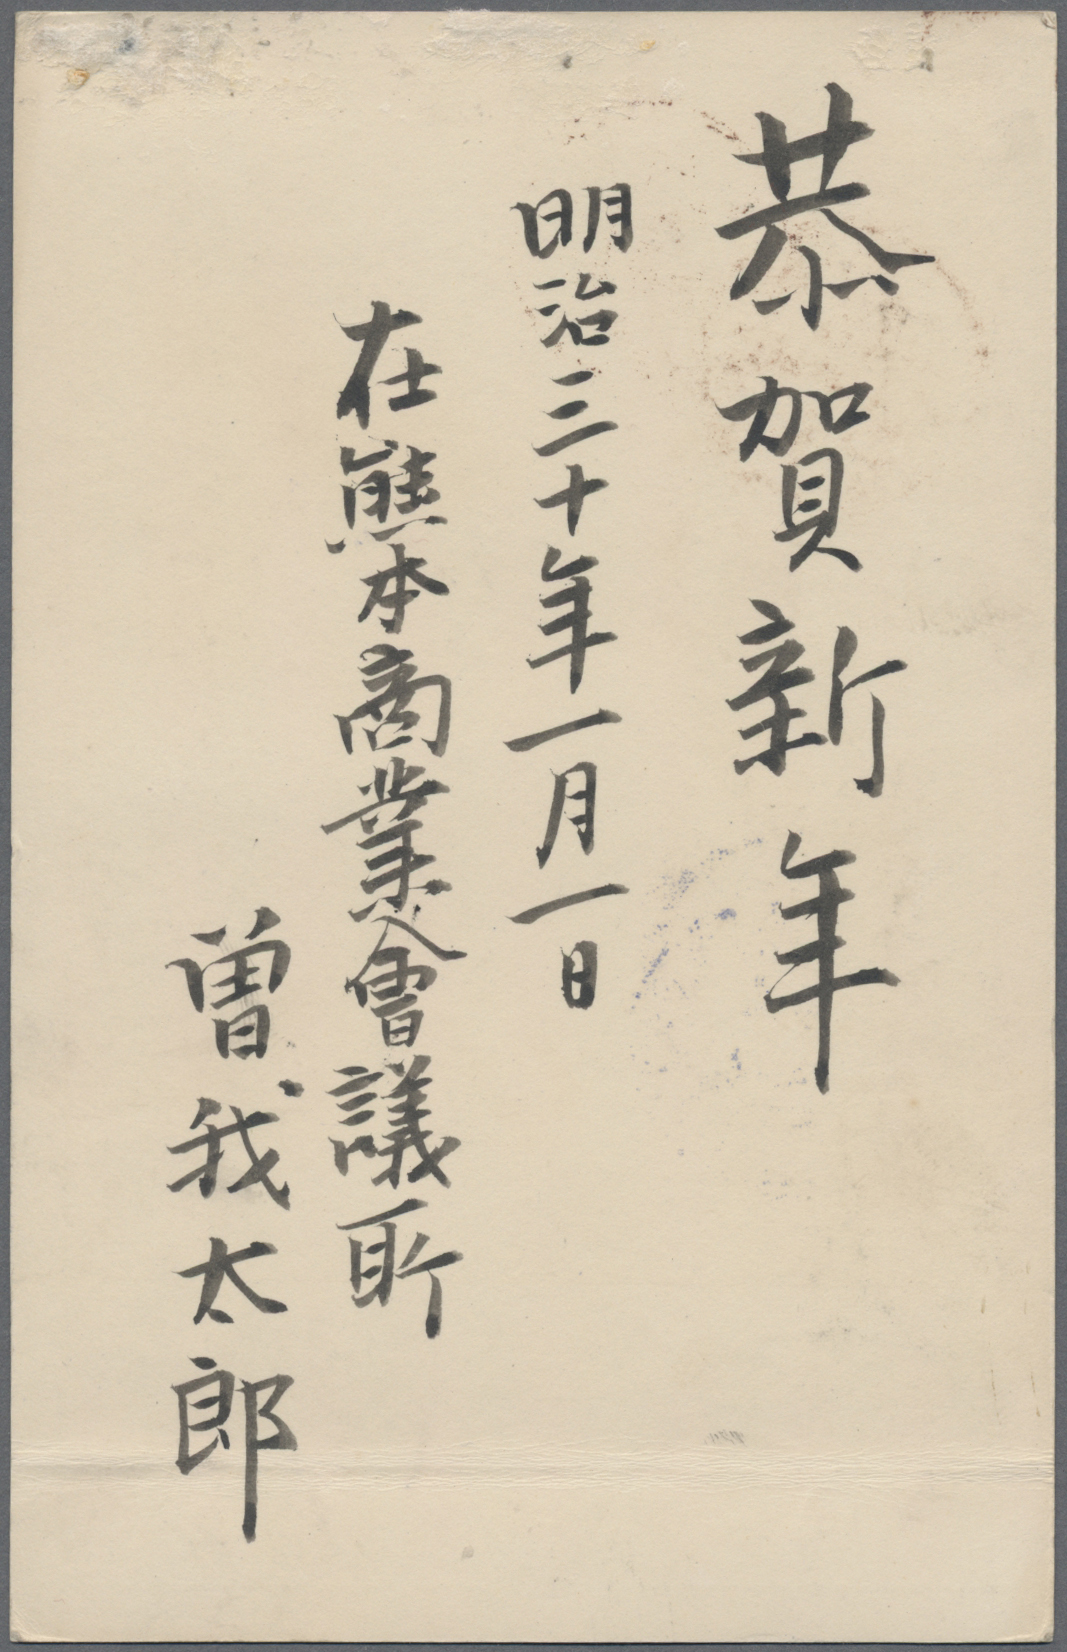 Lot 00091 - japanische post in china  -  Auktionshaus Christoph Gärtner GmbH & Co. KG Special auction